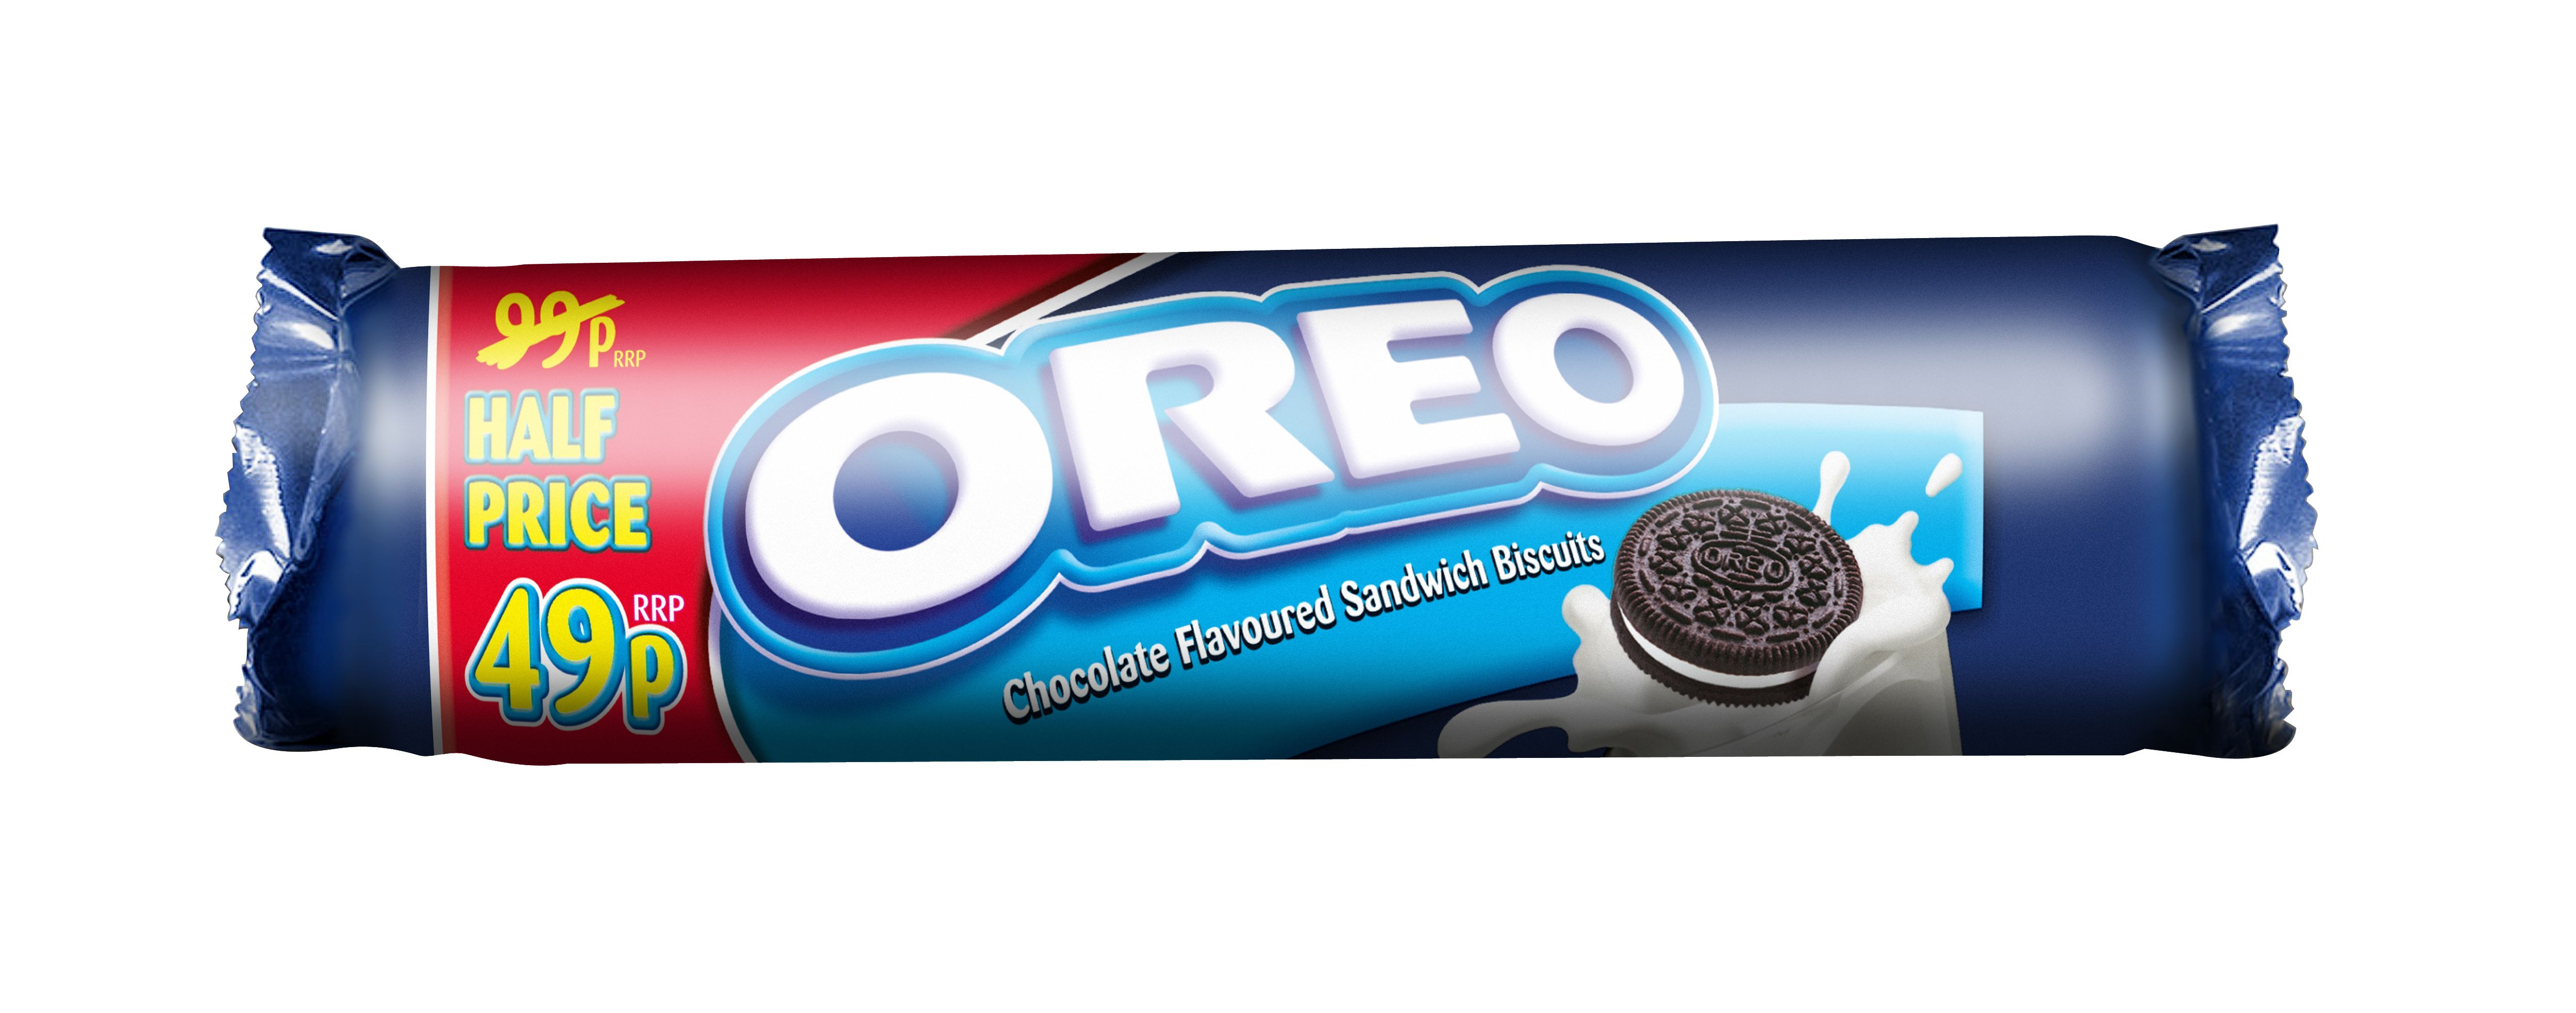 Oreo Introduces Price-marked Packs